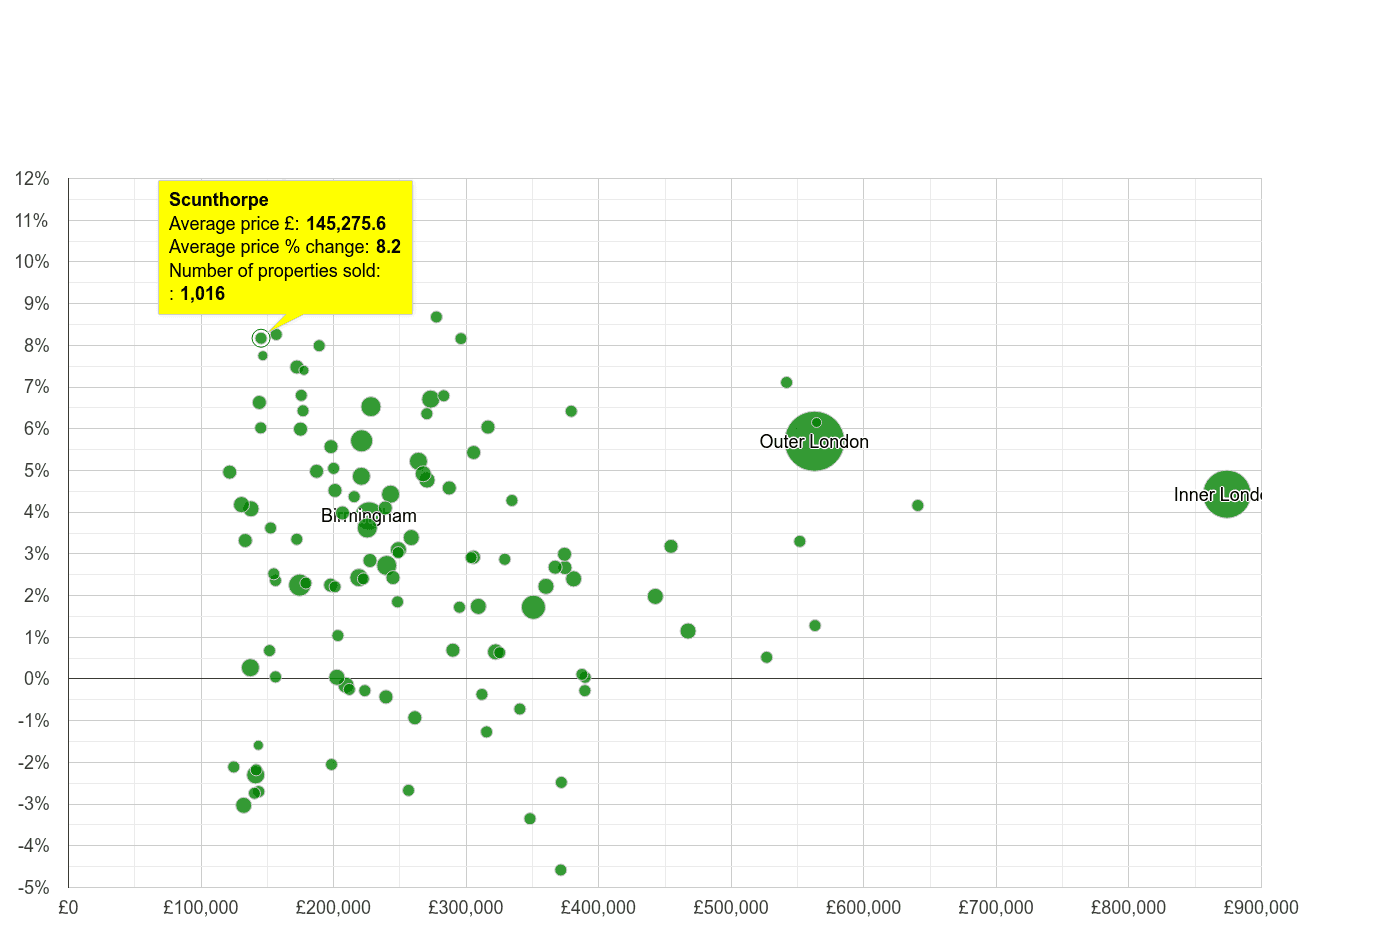 Scunthorpe house prices compared to other cities